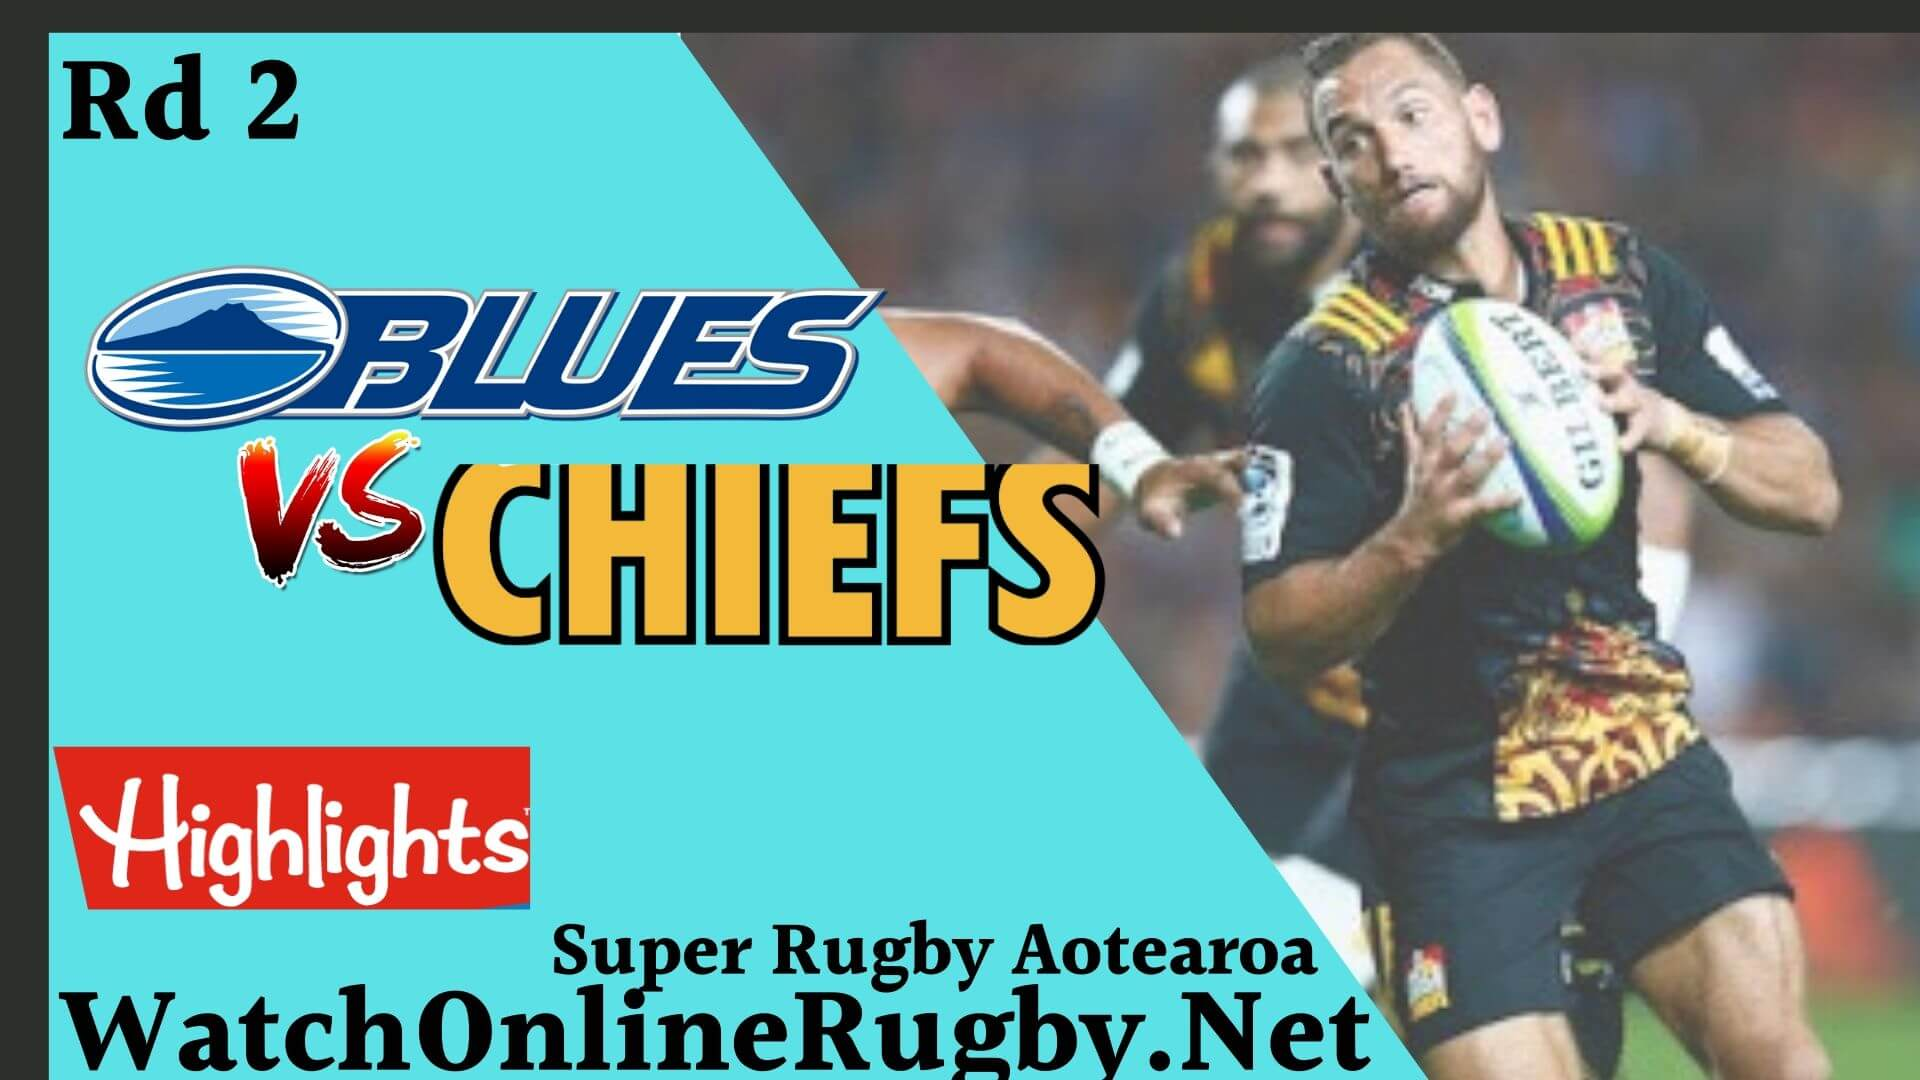 Blues Vs Chiefs Highlights Rd 2 Super Rugby Aotearoa 2020